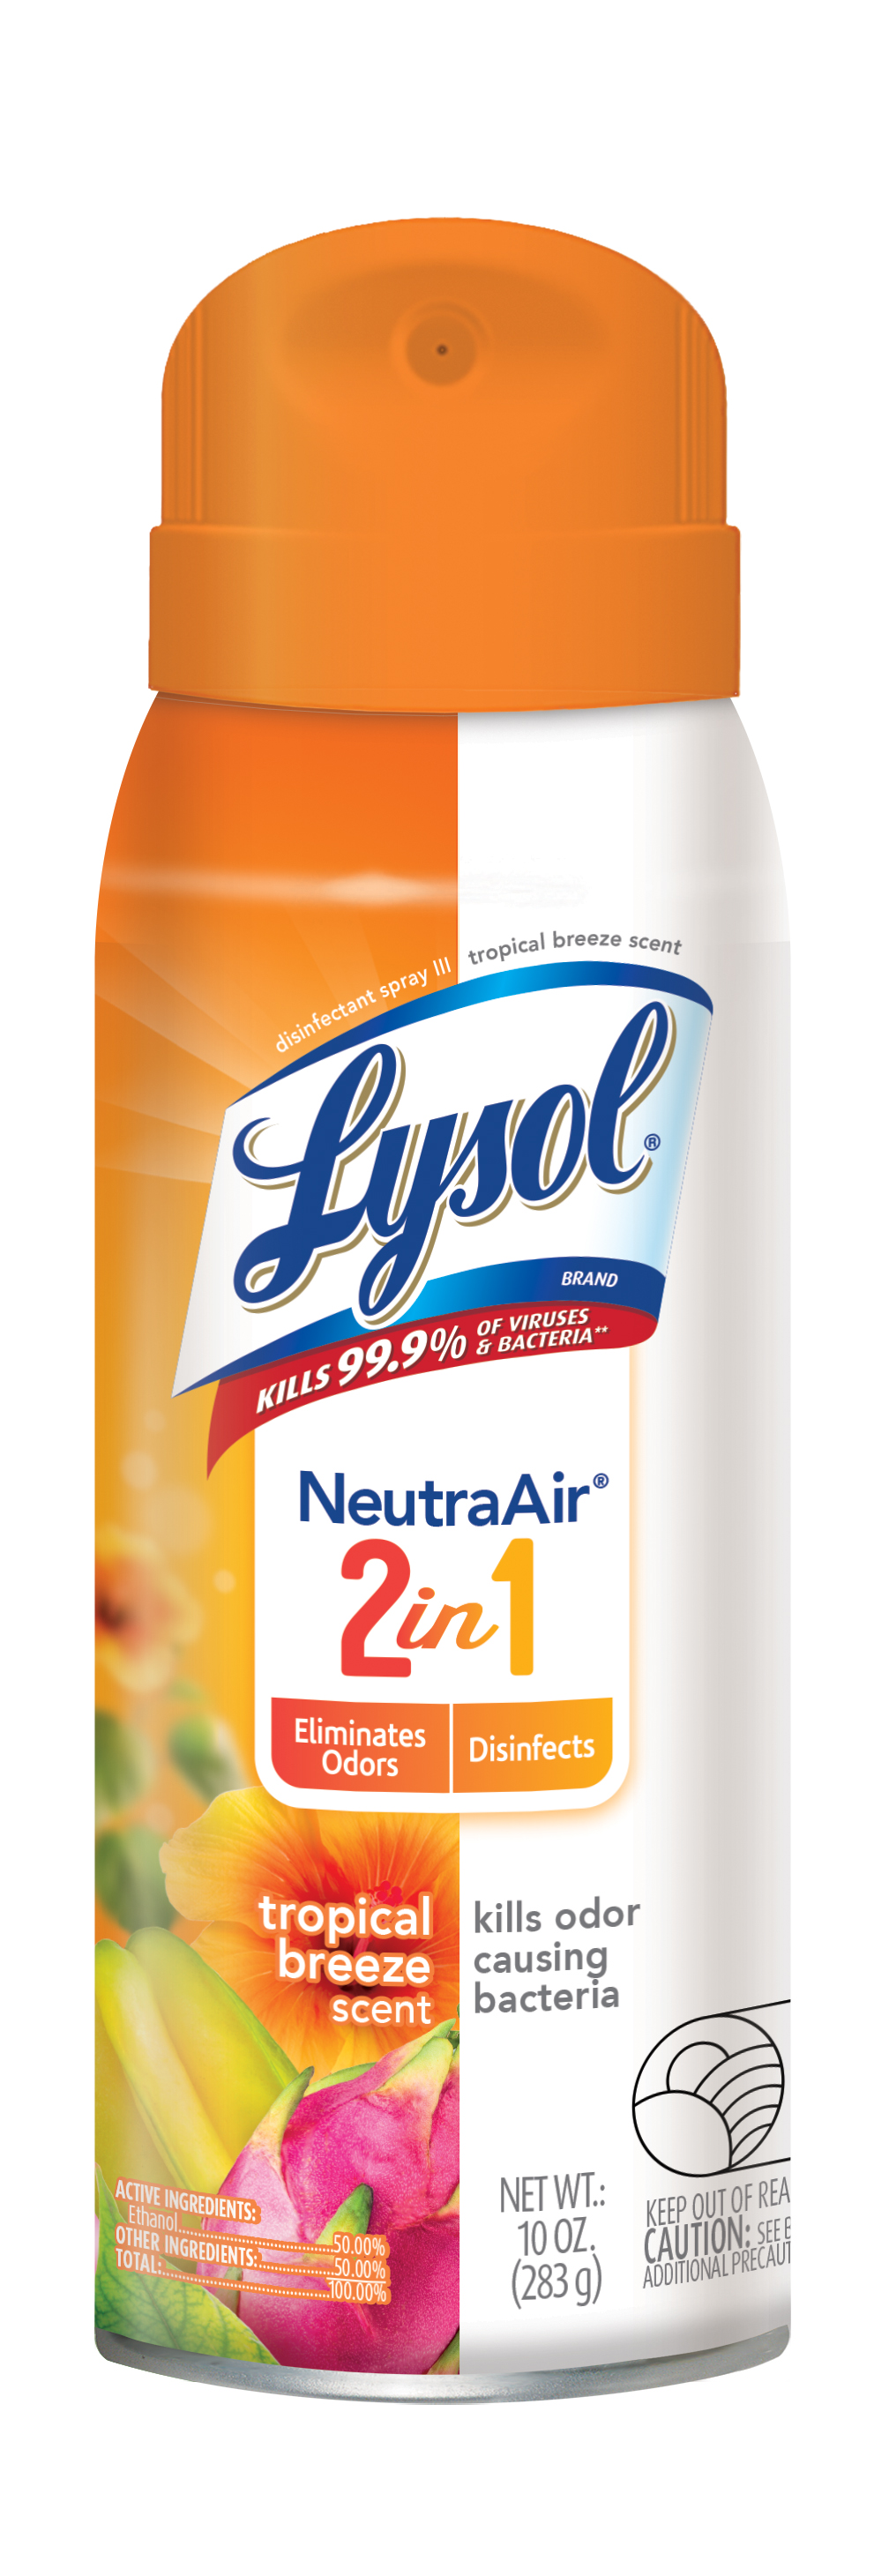 Lysol Disinfectant Spray, Neutra Air 2 in 1, Tropical Scent, 10oz